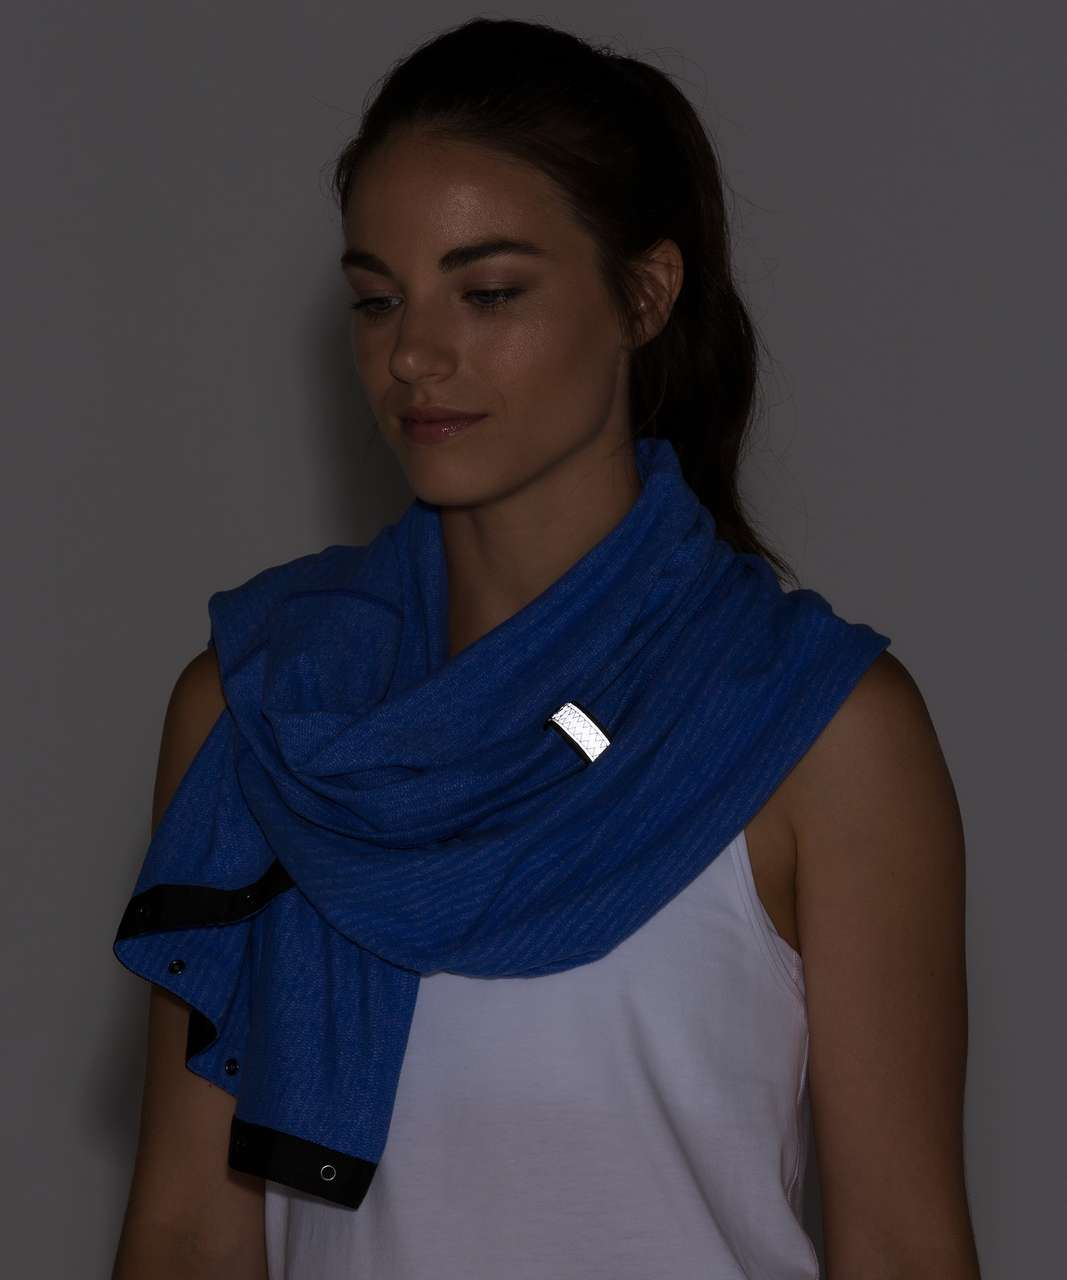 Lululemon Vinyasa Scarf (Rulu) - Mini Check Pique Sprinkler Heathered Sprinkler